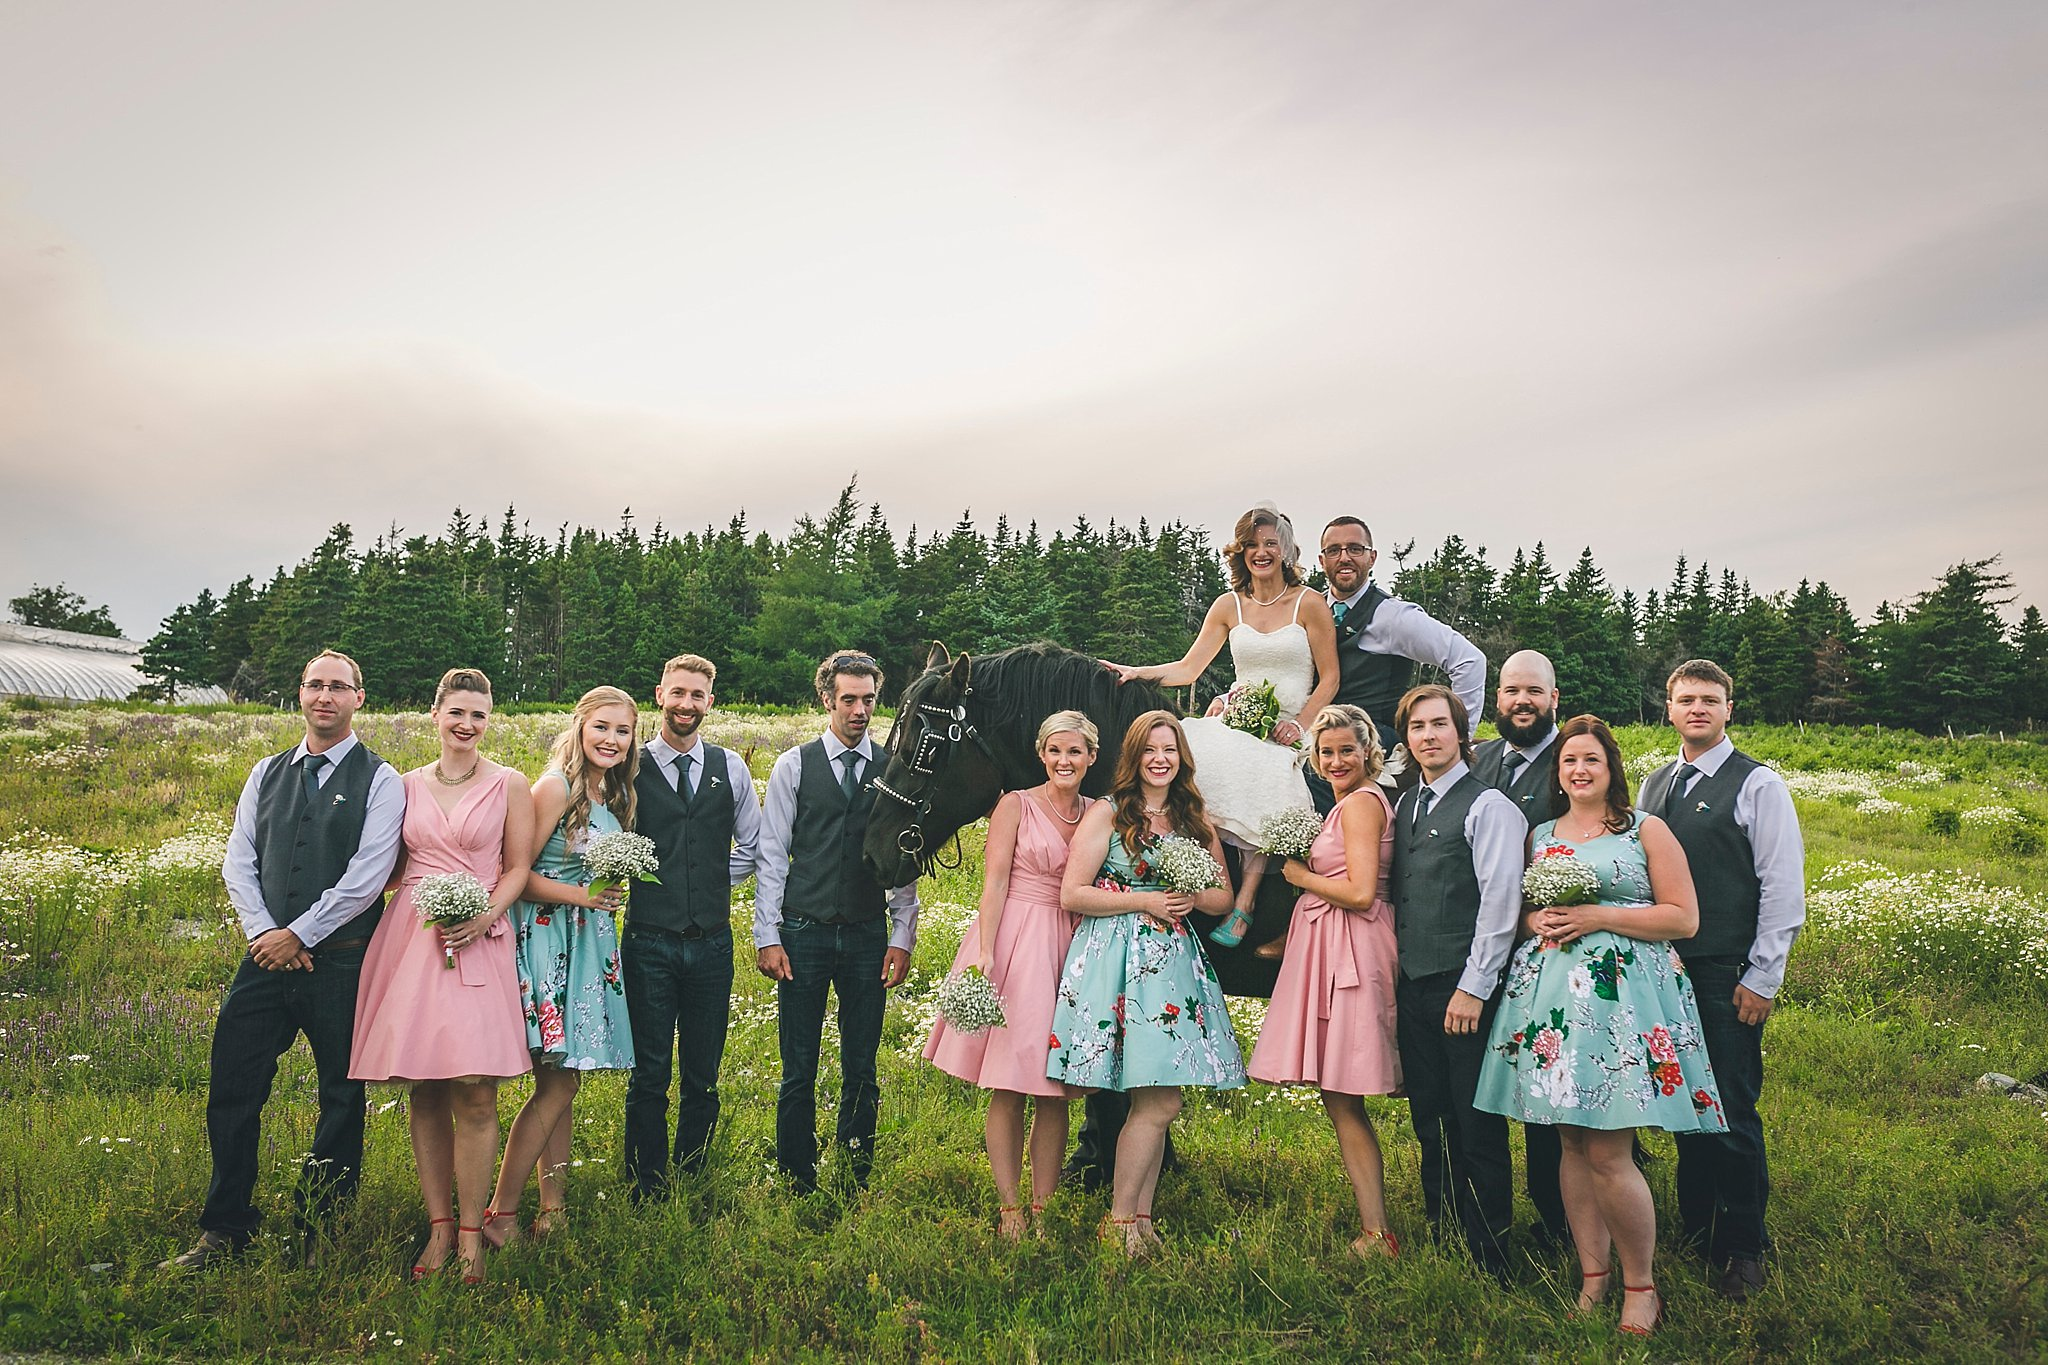 Wedding party have their photo taken with horse during a St. John's, Newfoundland Wedding held at Lester's Farm